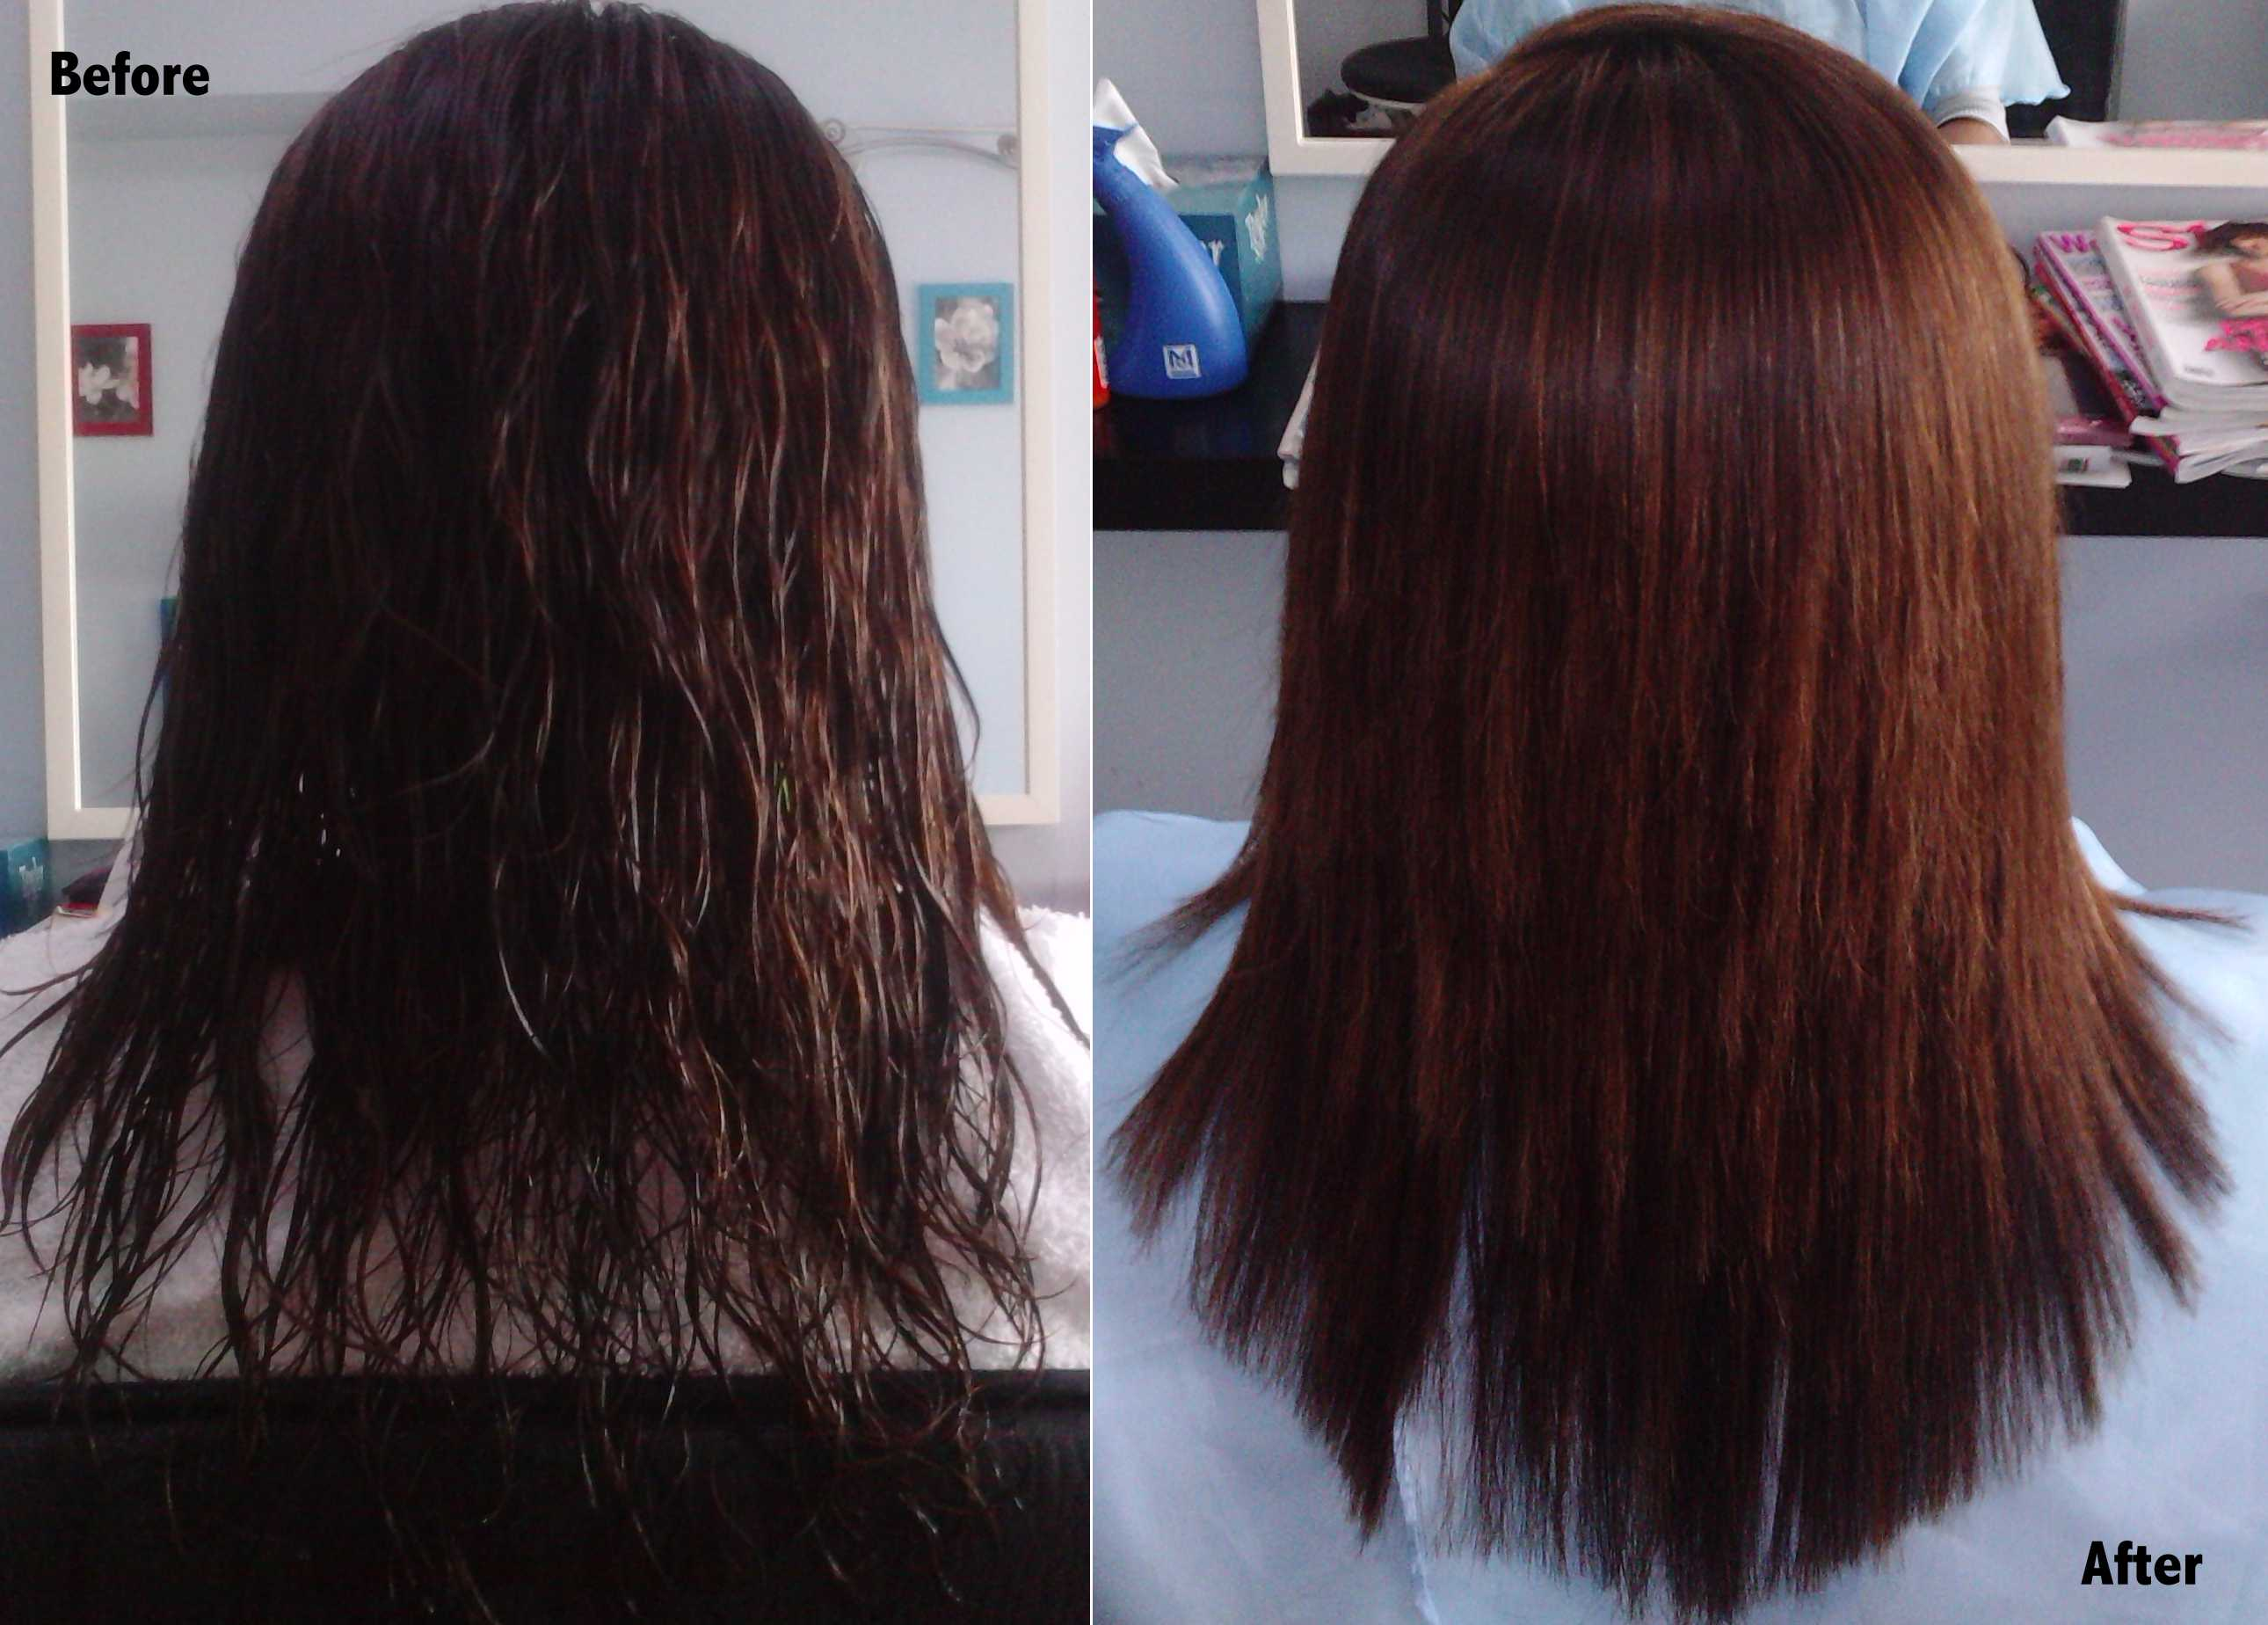 After Rebonding Hair Frizzy Rebounding Hair Image